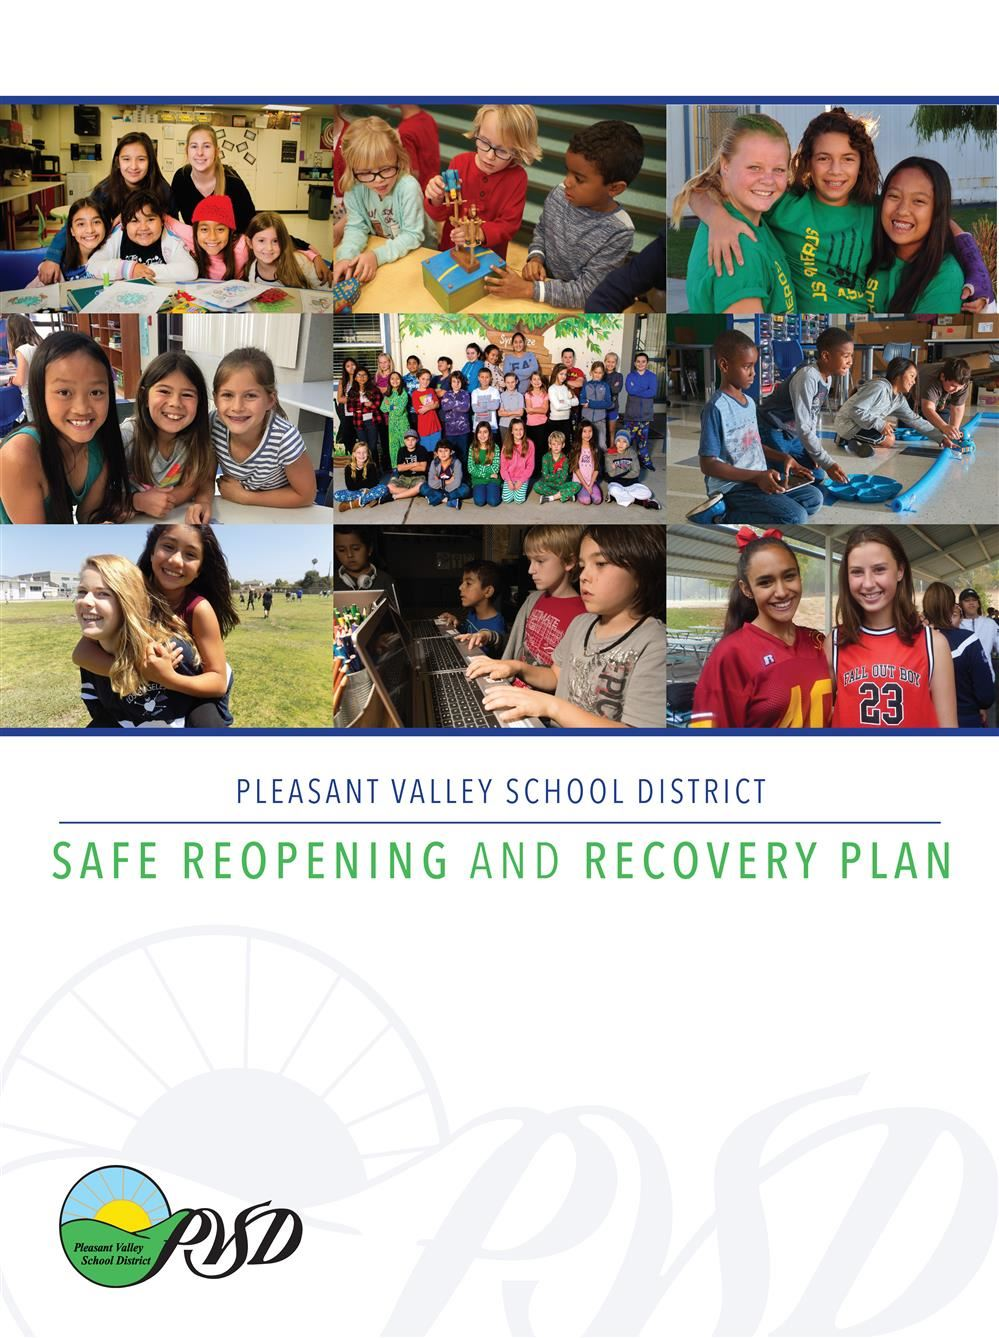 PVSD Safe Reopening and Recovery Plan (School Board Approved 7/30/2020)